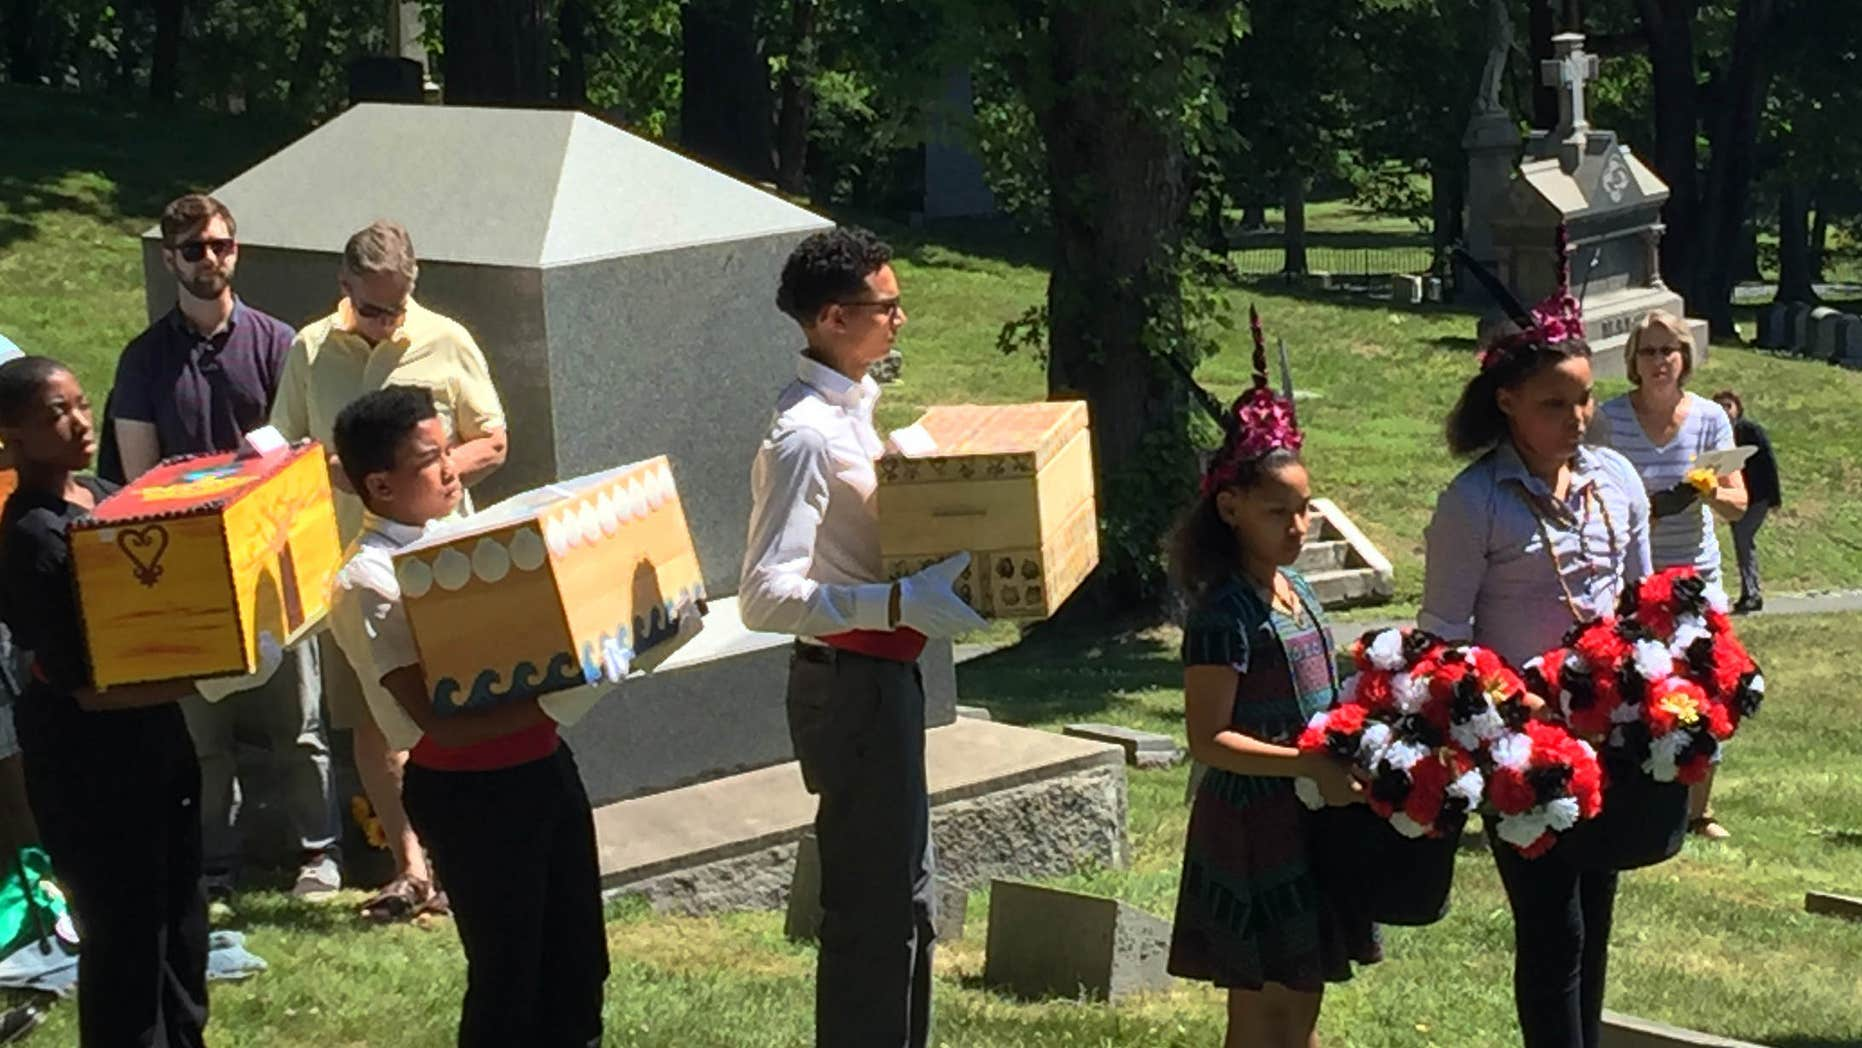 June 18, 2016: In this photo provided by the Albany Diocesan Cemeteries, pallbearers carry the remains of 14 slaves to awaiting graves at St. Agnes Cemetery in Albany, N.Y.